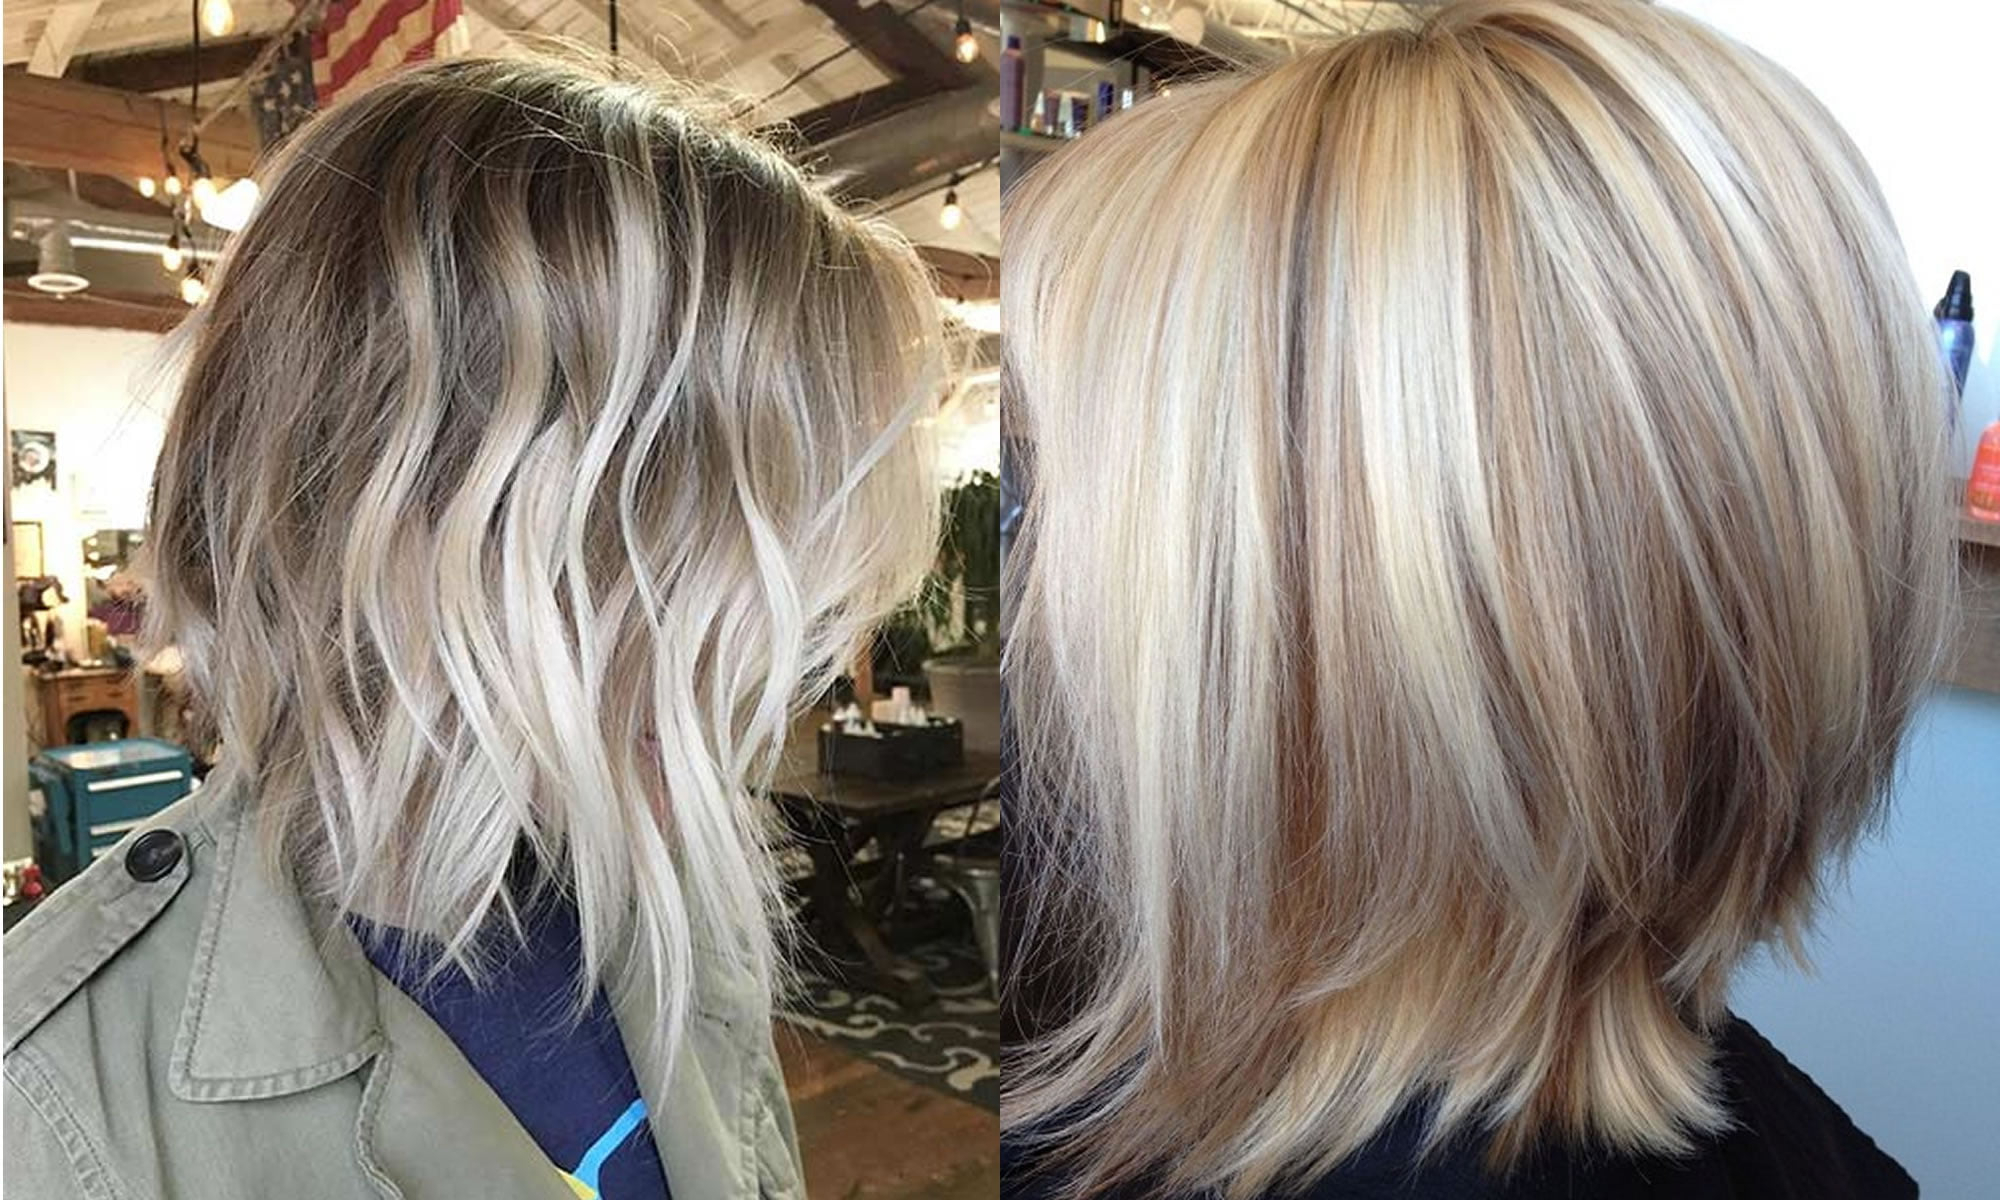 The Best 50 Balayage Bob Hairstyles (short+long With Regard To Balayage For Short Stacked Bob Hairstyles (View 14 of 20)